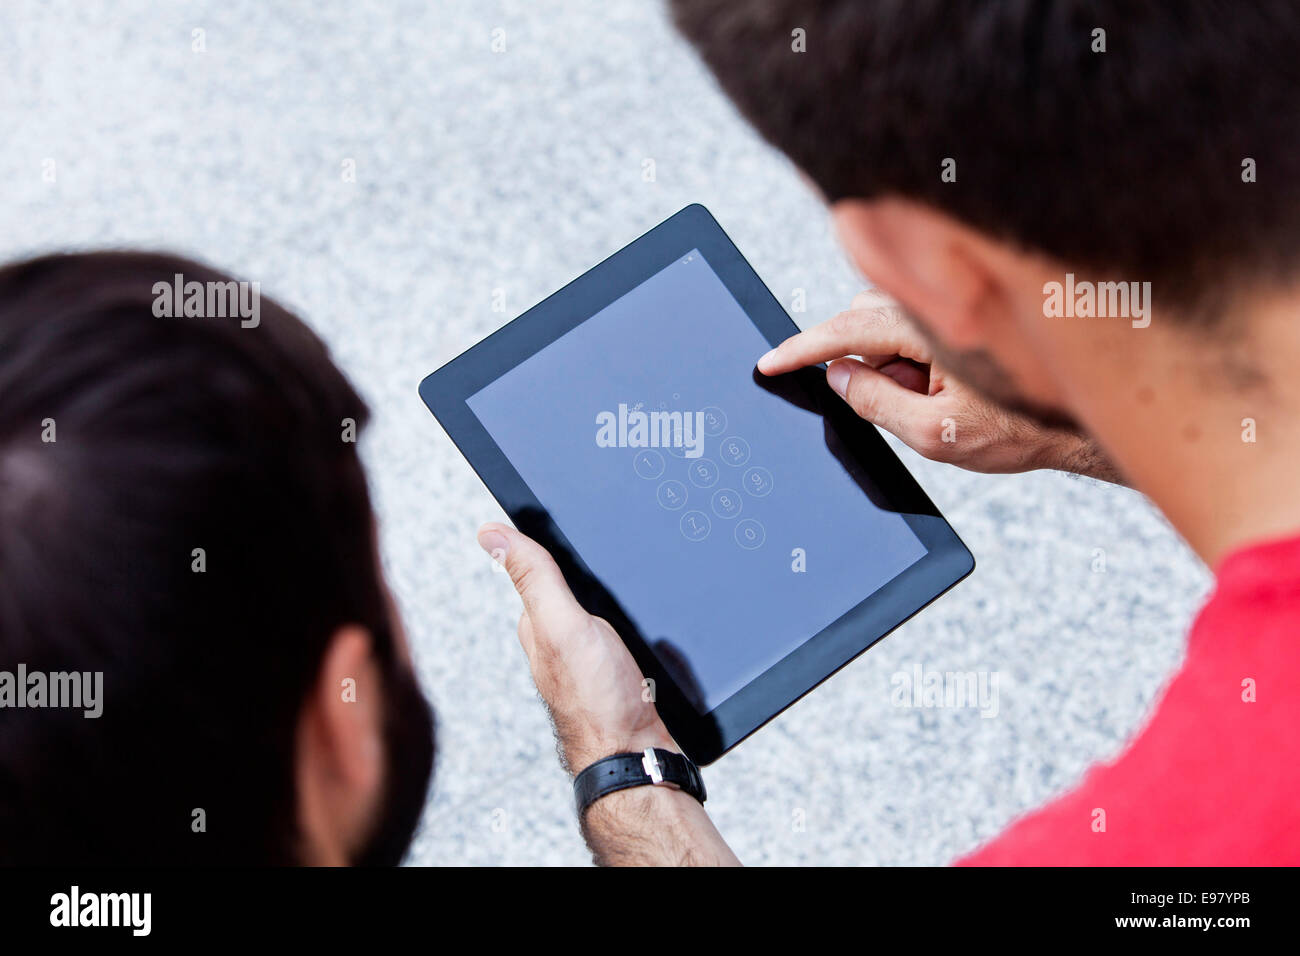 Using digital tablet with touchscreen - Stock Image